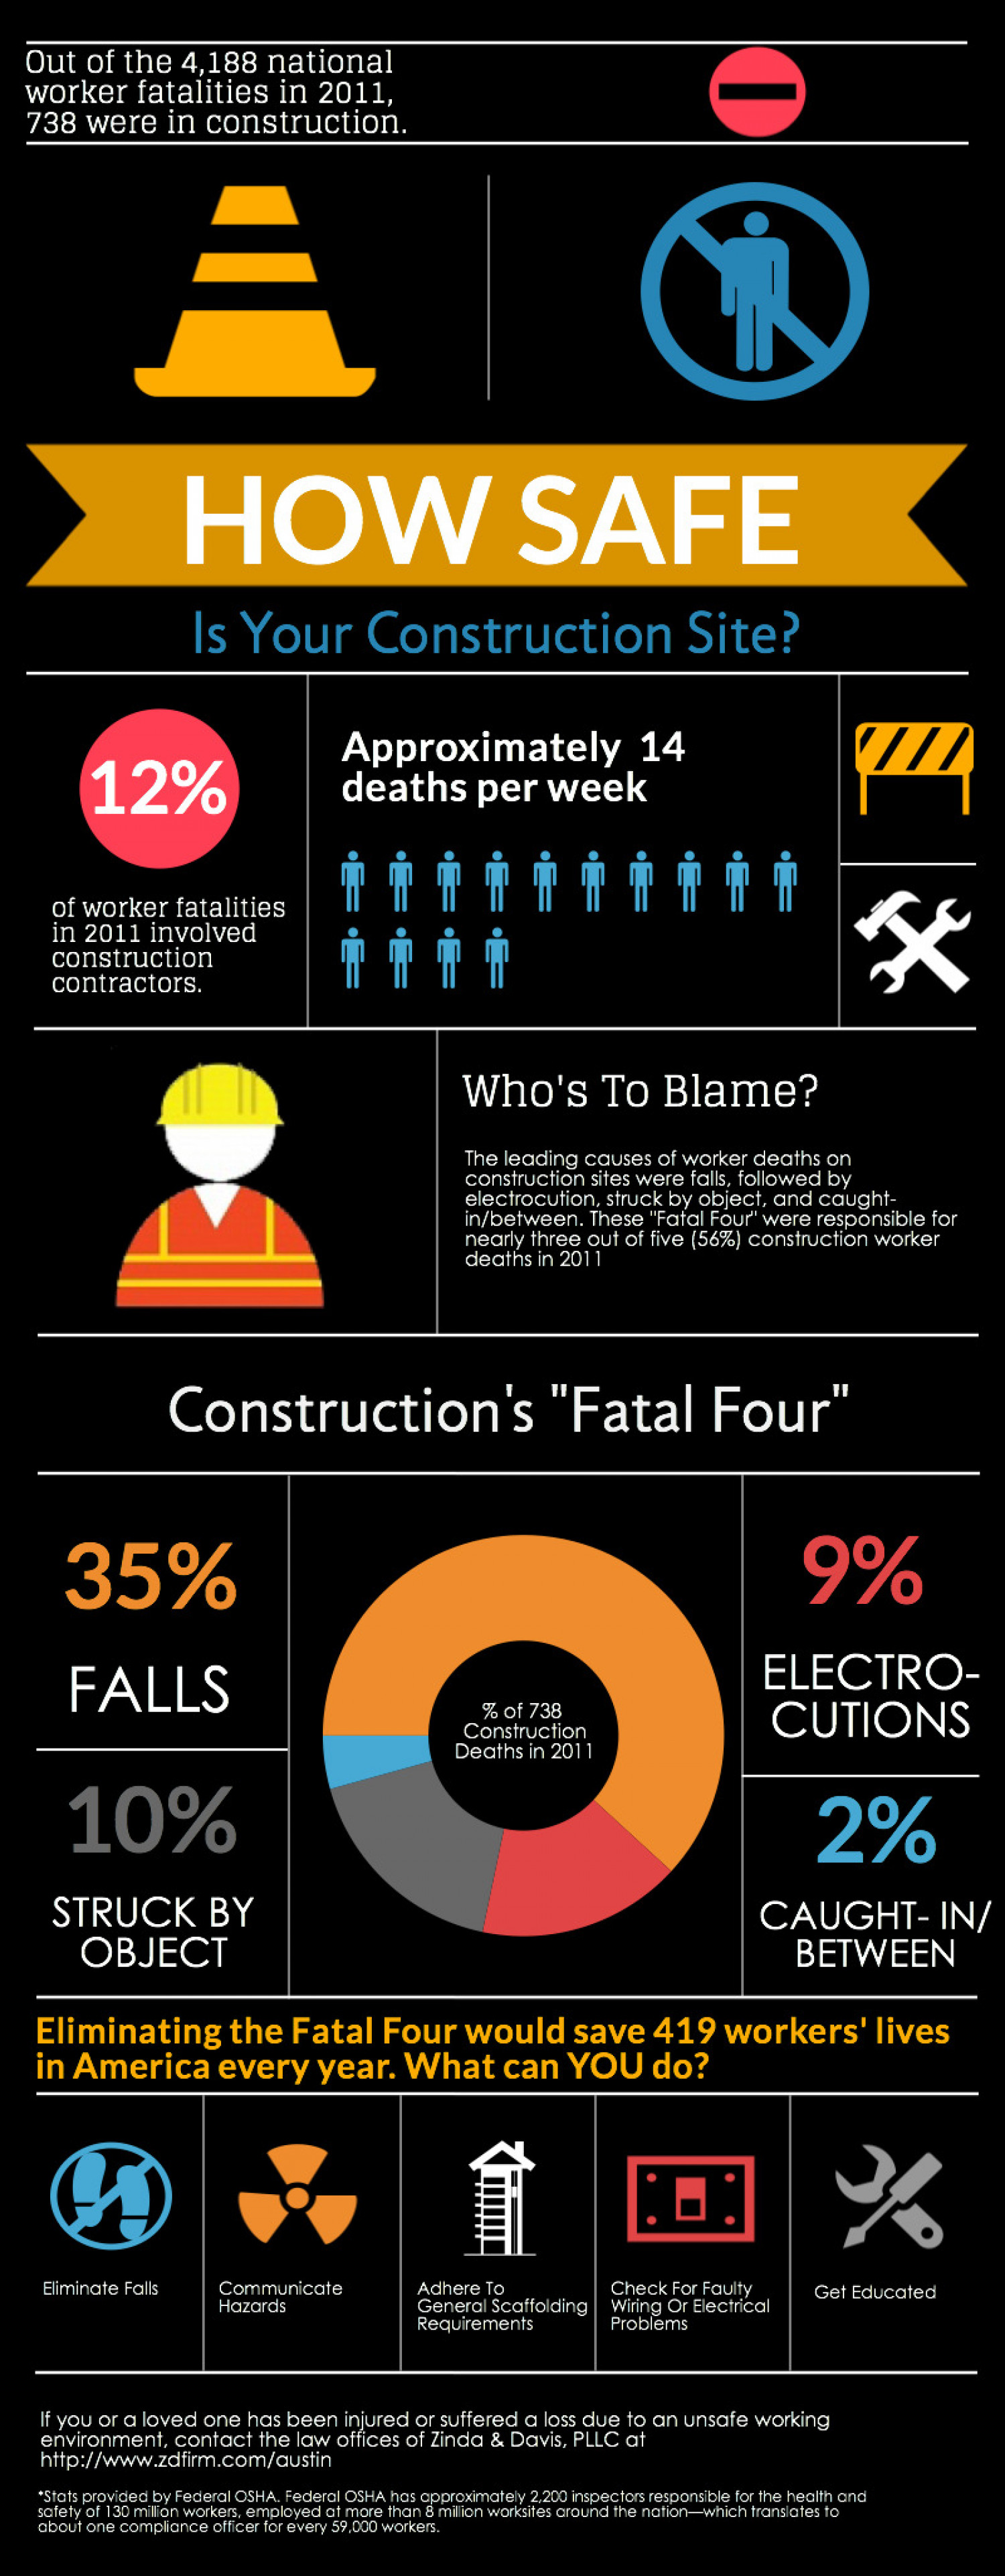 how safe is your construction site